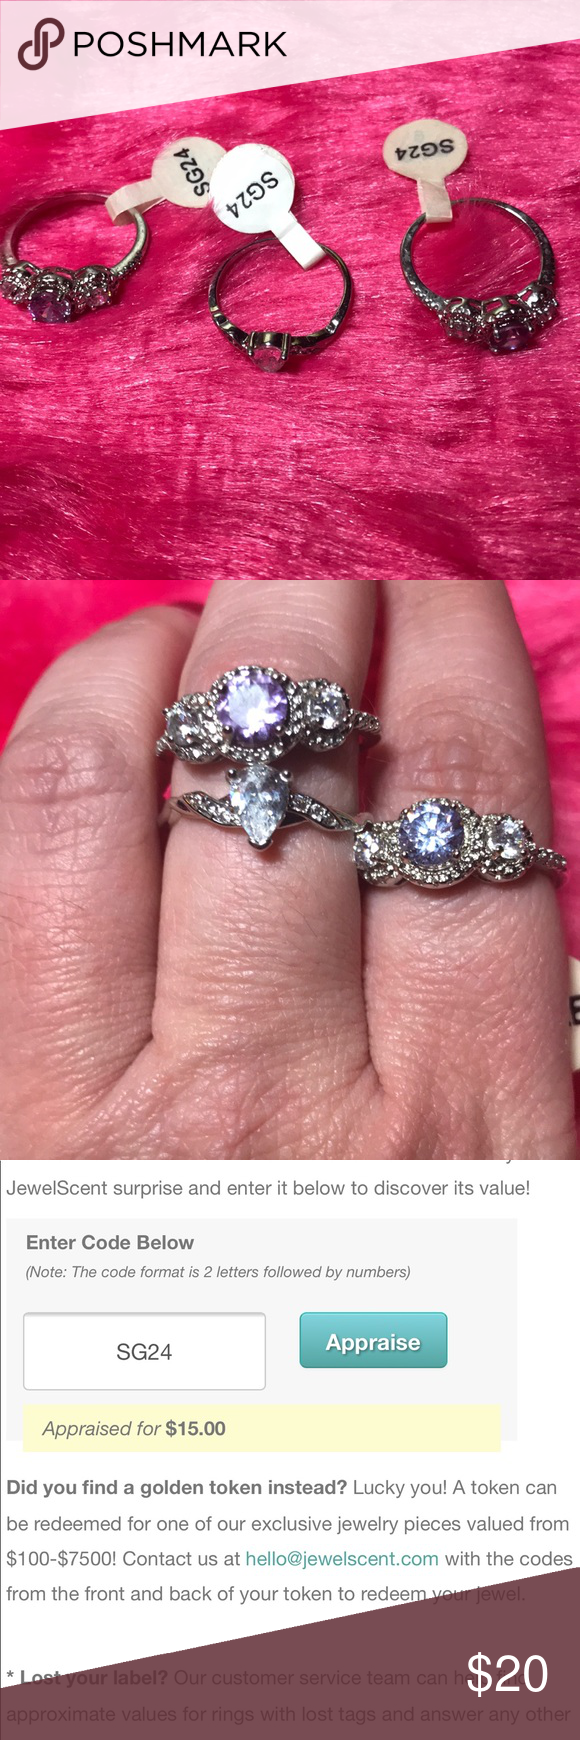 Lot of JewelScent Size 9 Rings